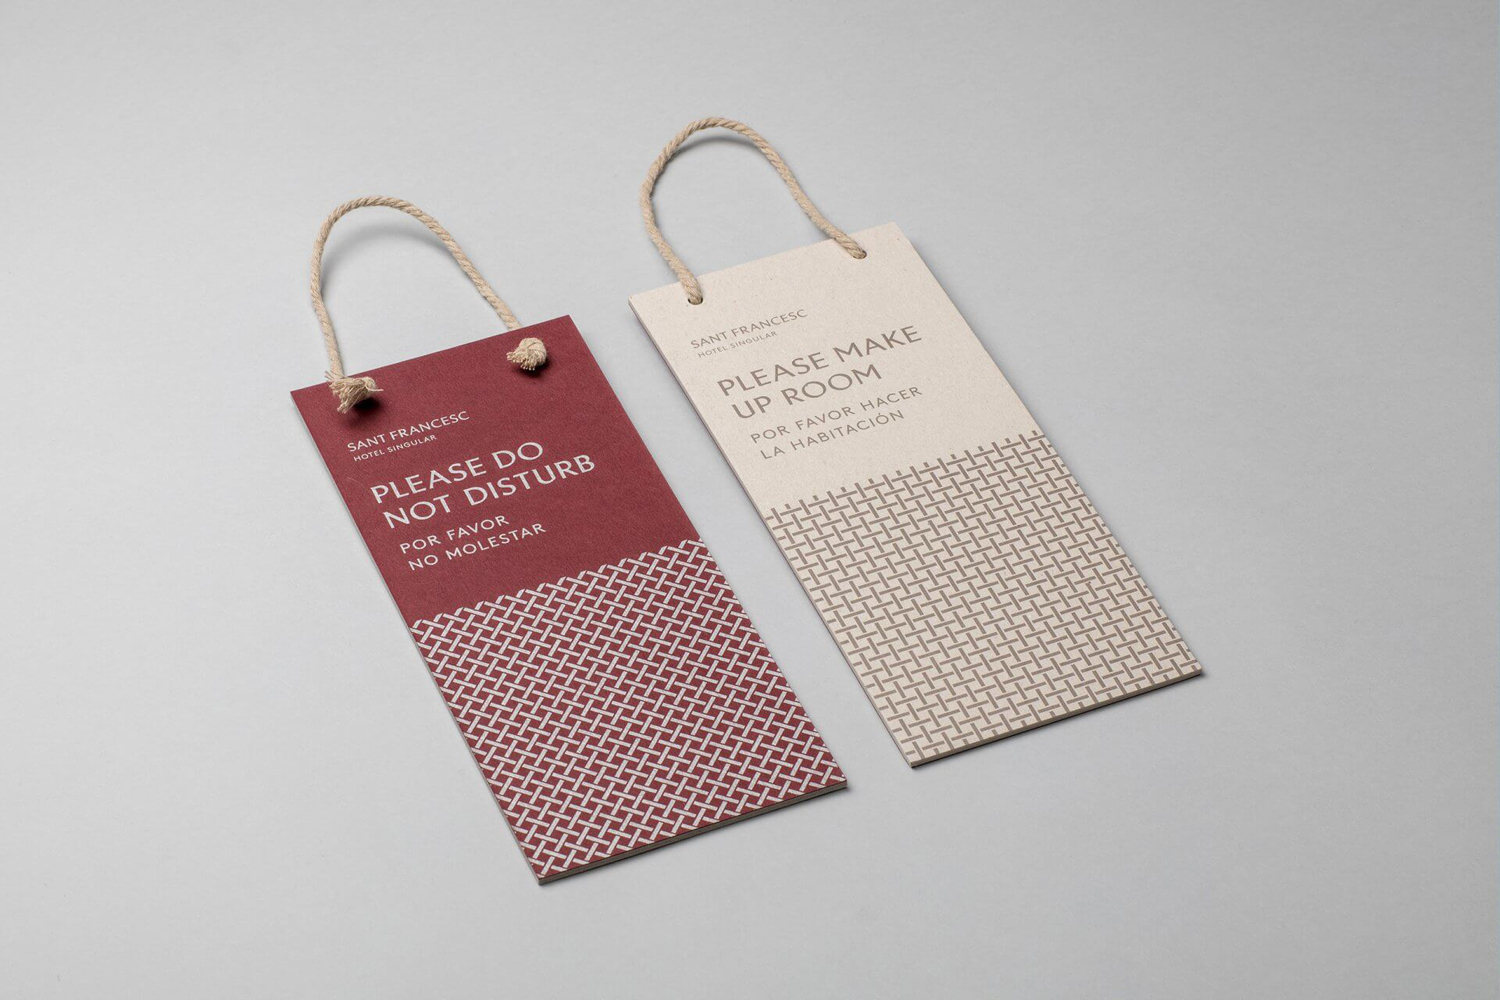 Brand identity and door hangers designed by Mucho for Spanish 5-star hotel Sant Francesc.